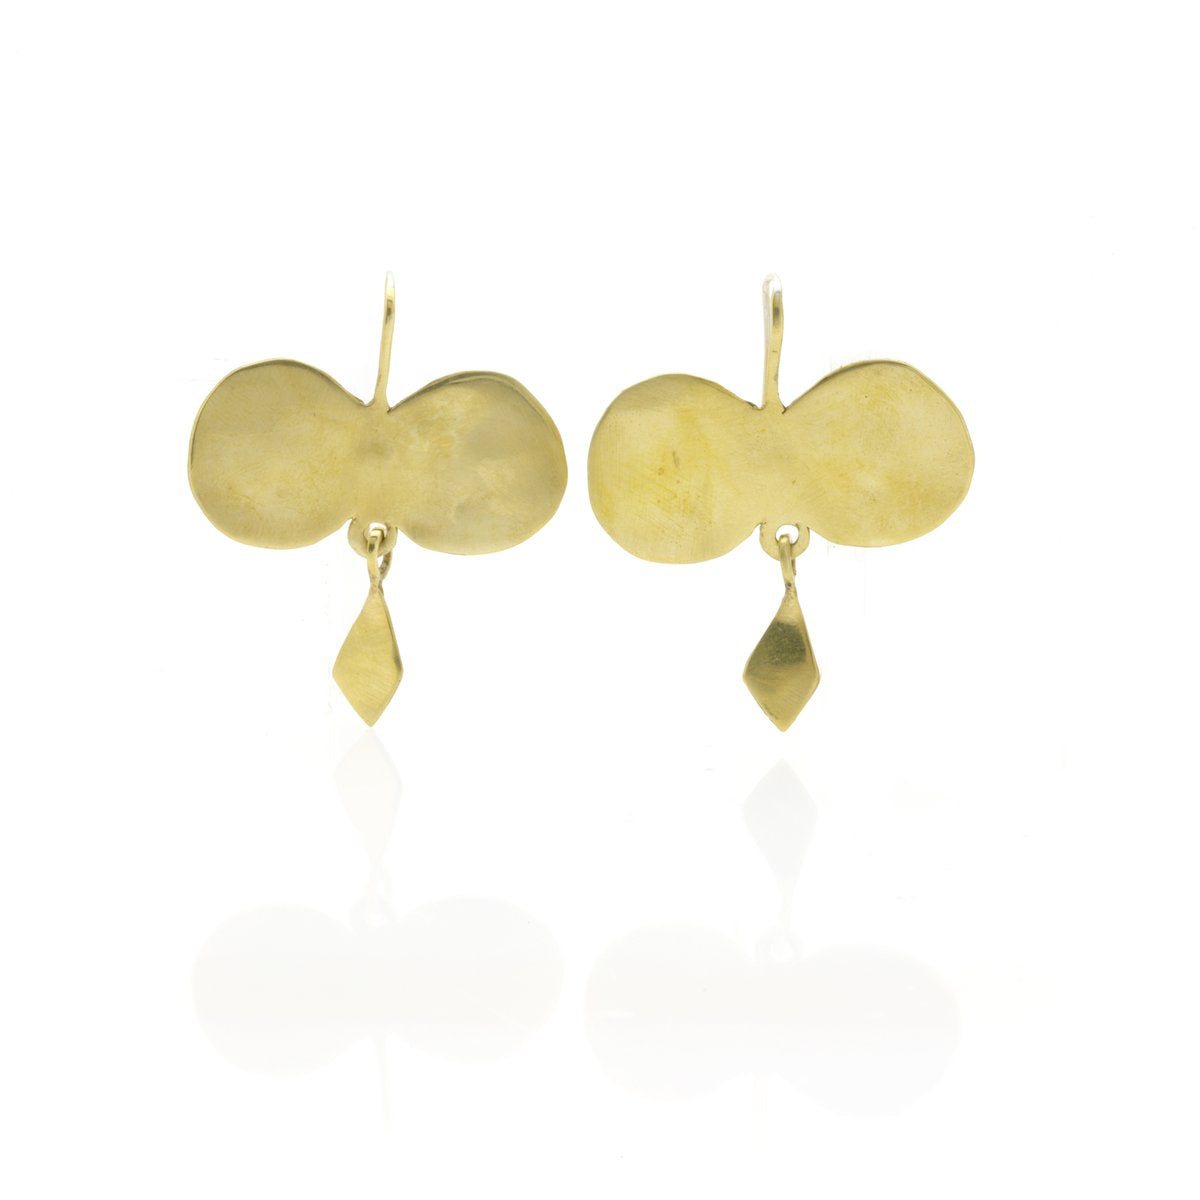 Ariana Boussard-Reifel Mazcala Earrings